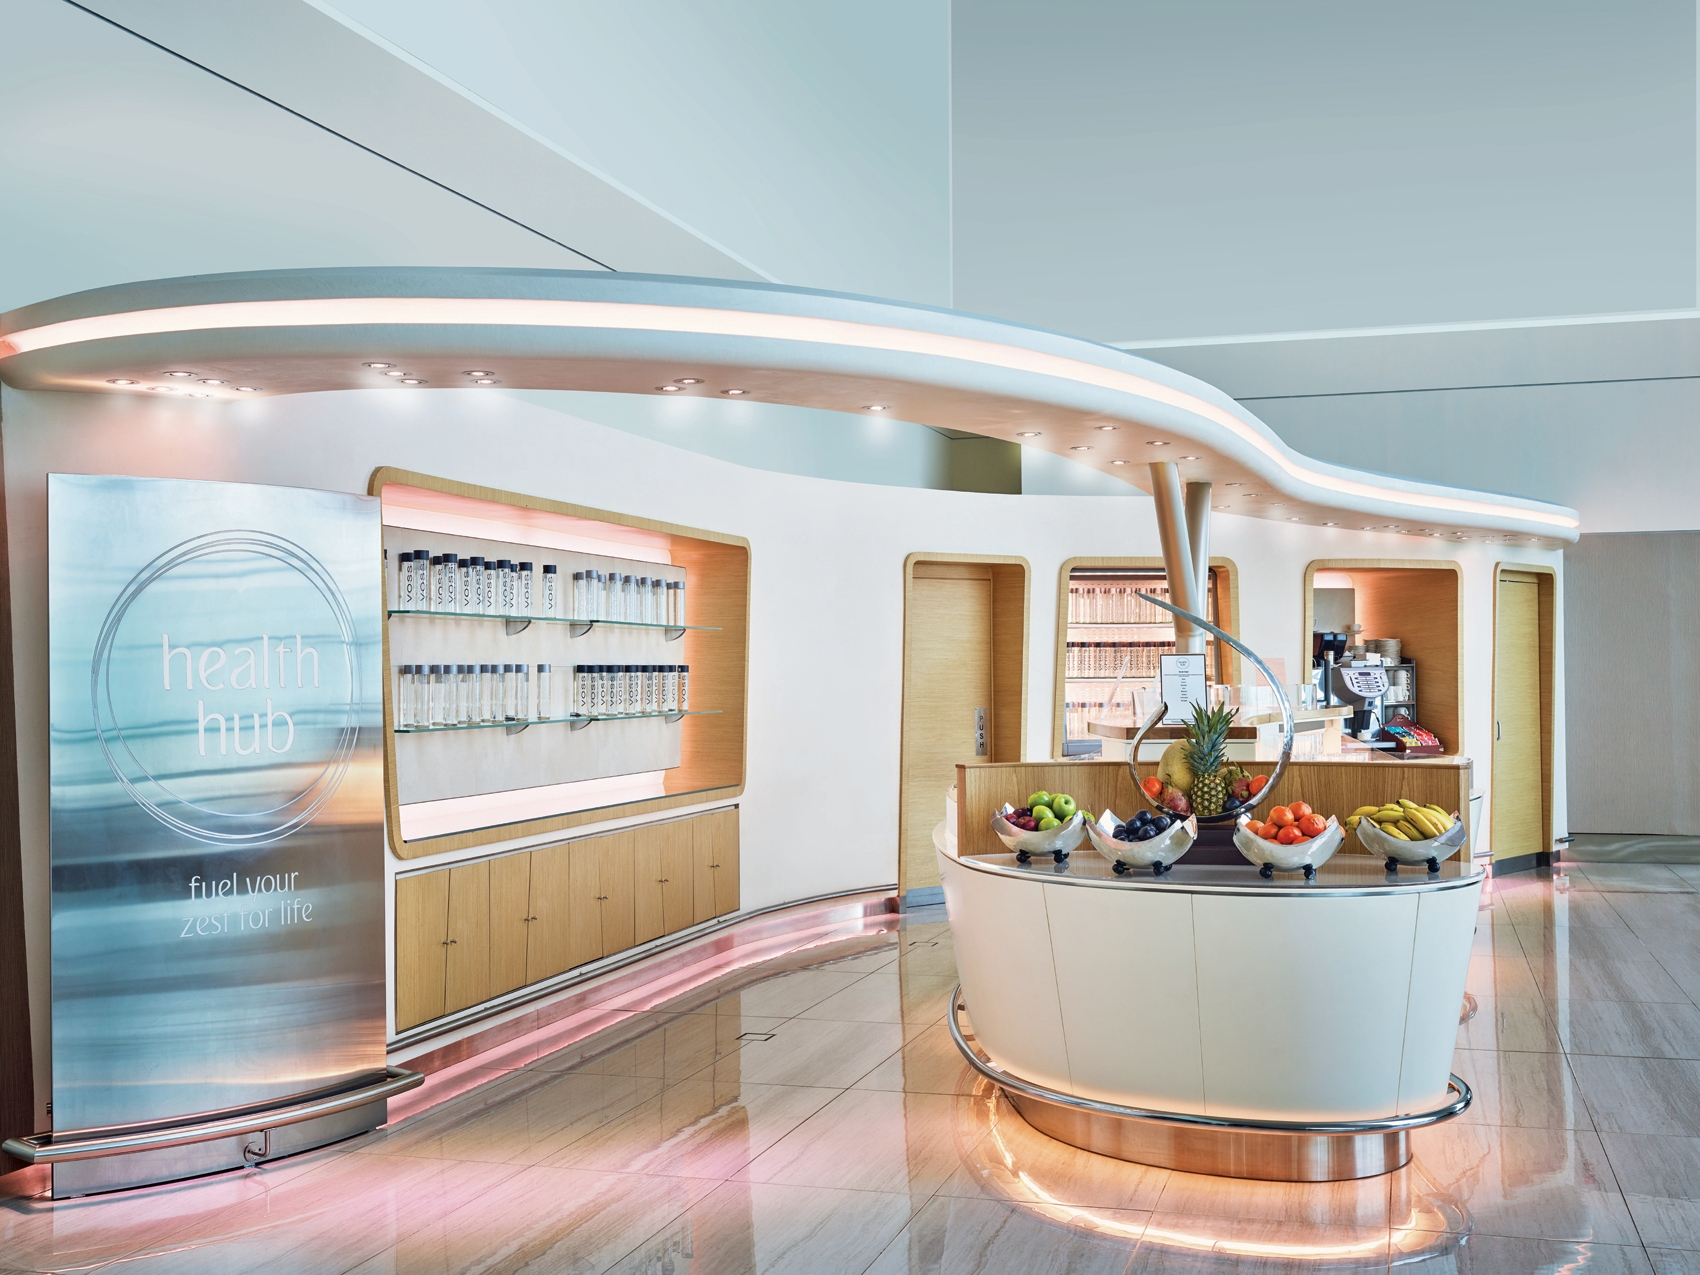 Emirates Business Class Lounge Health Hub Voss